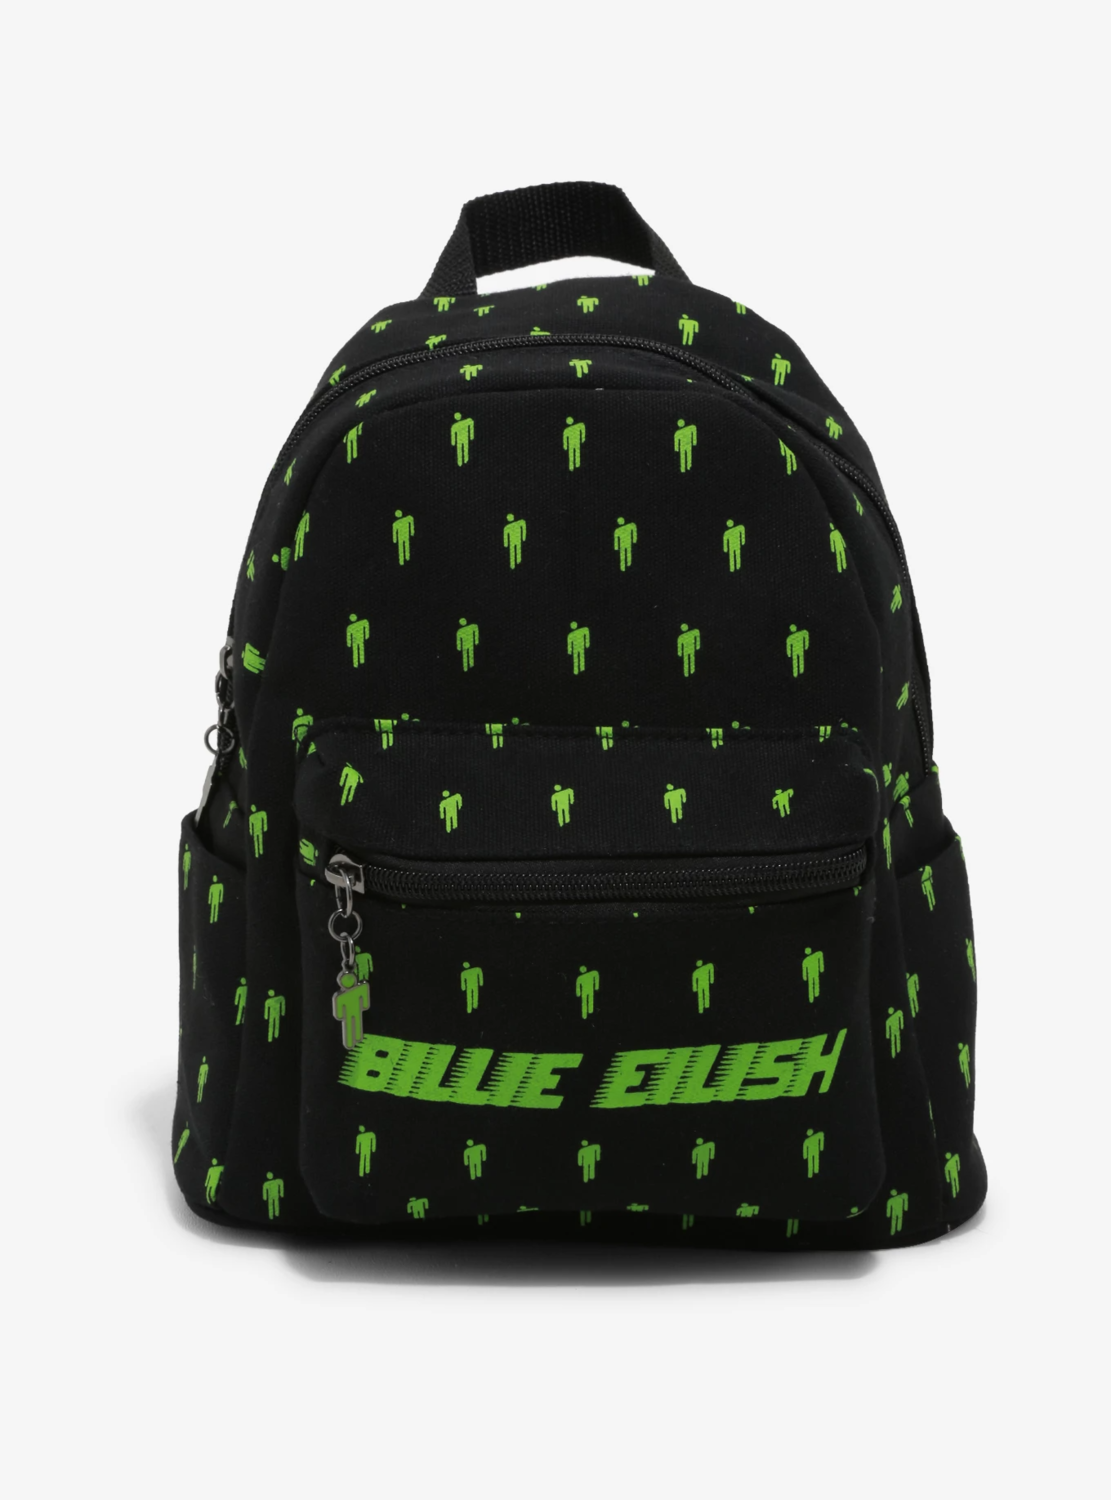 Mochila BILLIE EILISH